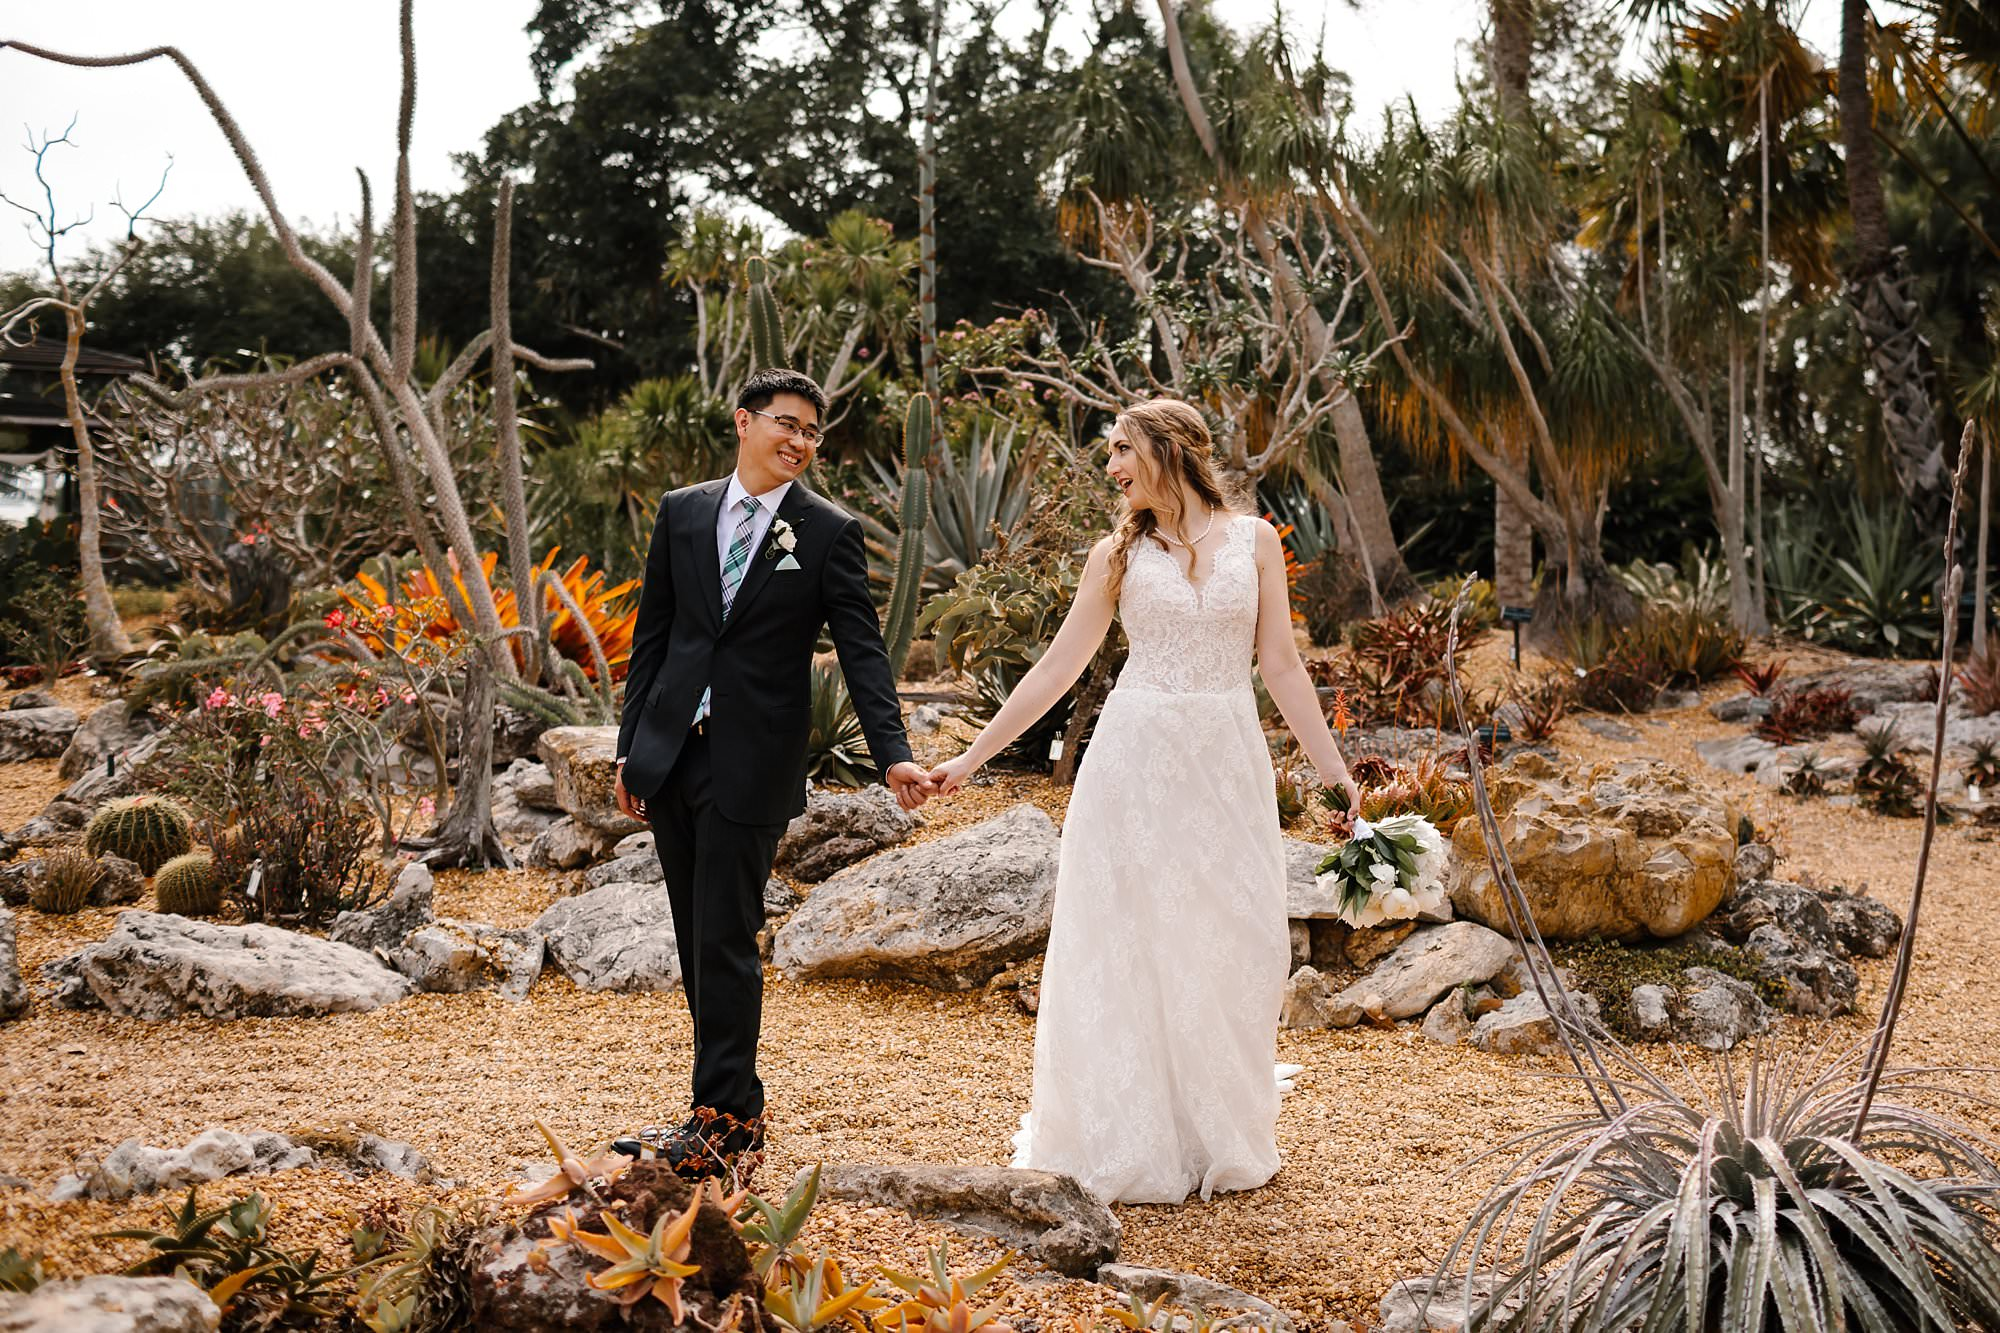 Amanda Zimmerman & Kevin Huang | Amy Little Photography